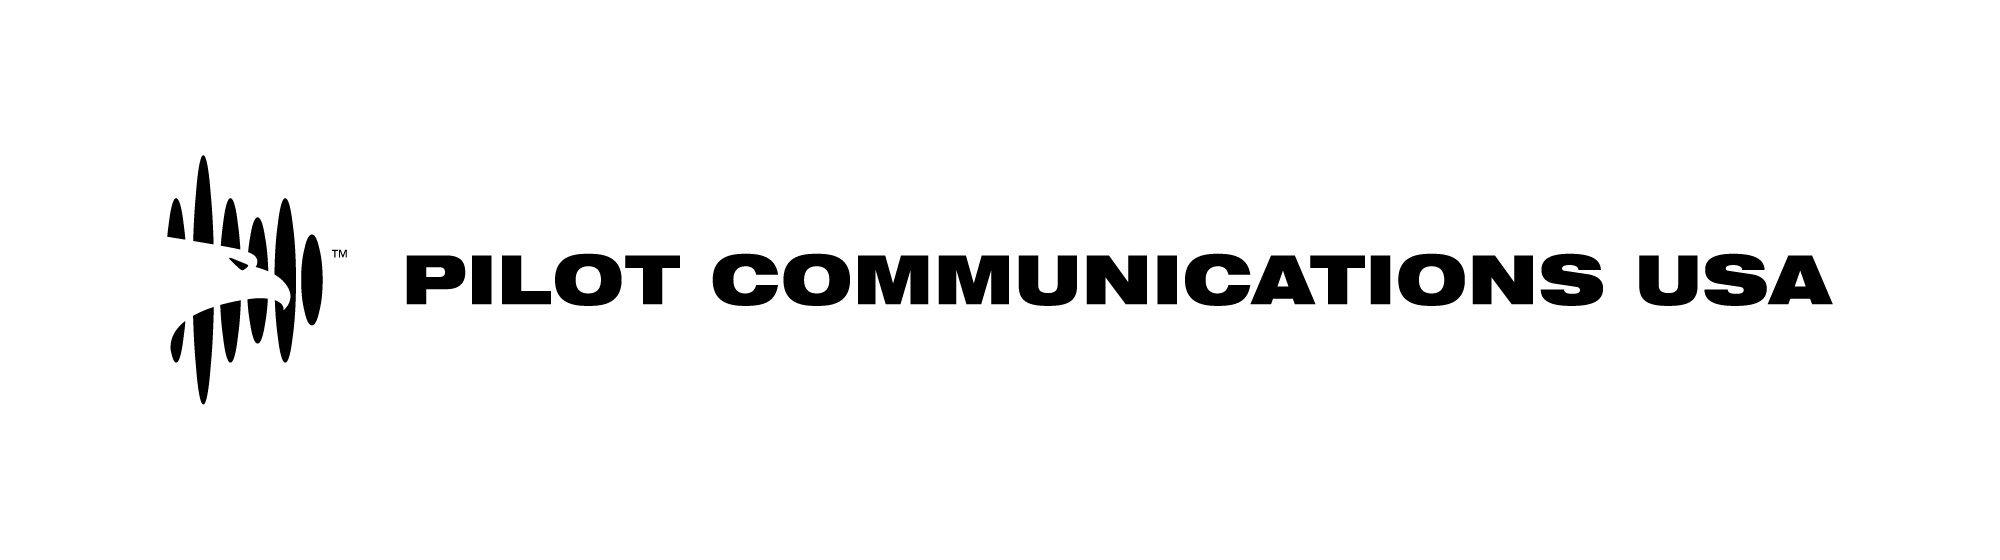 Pilot Communications USA